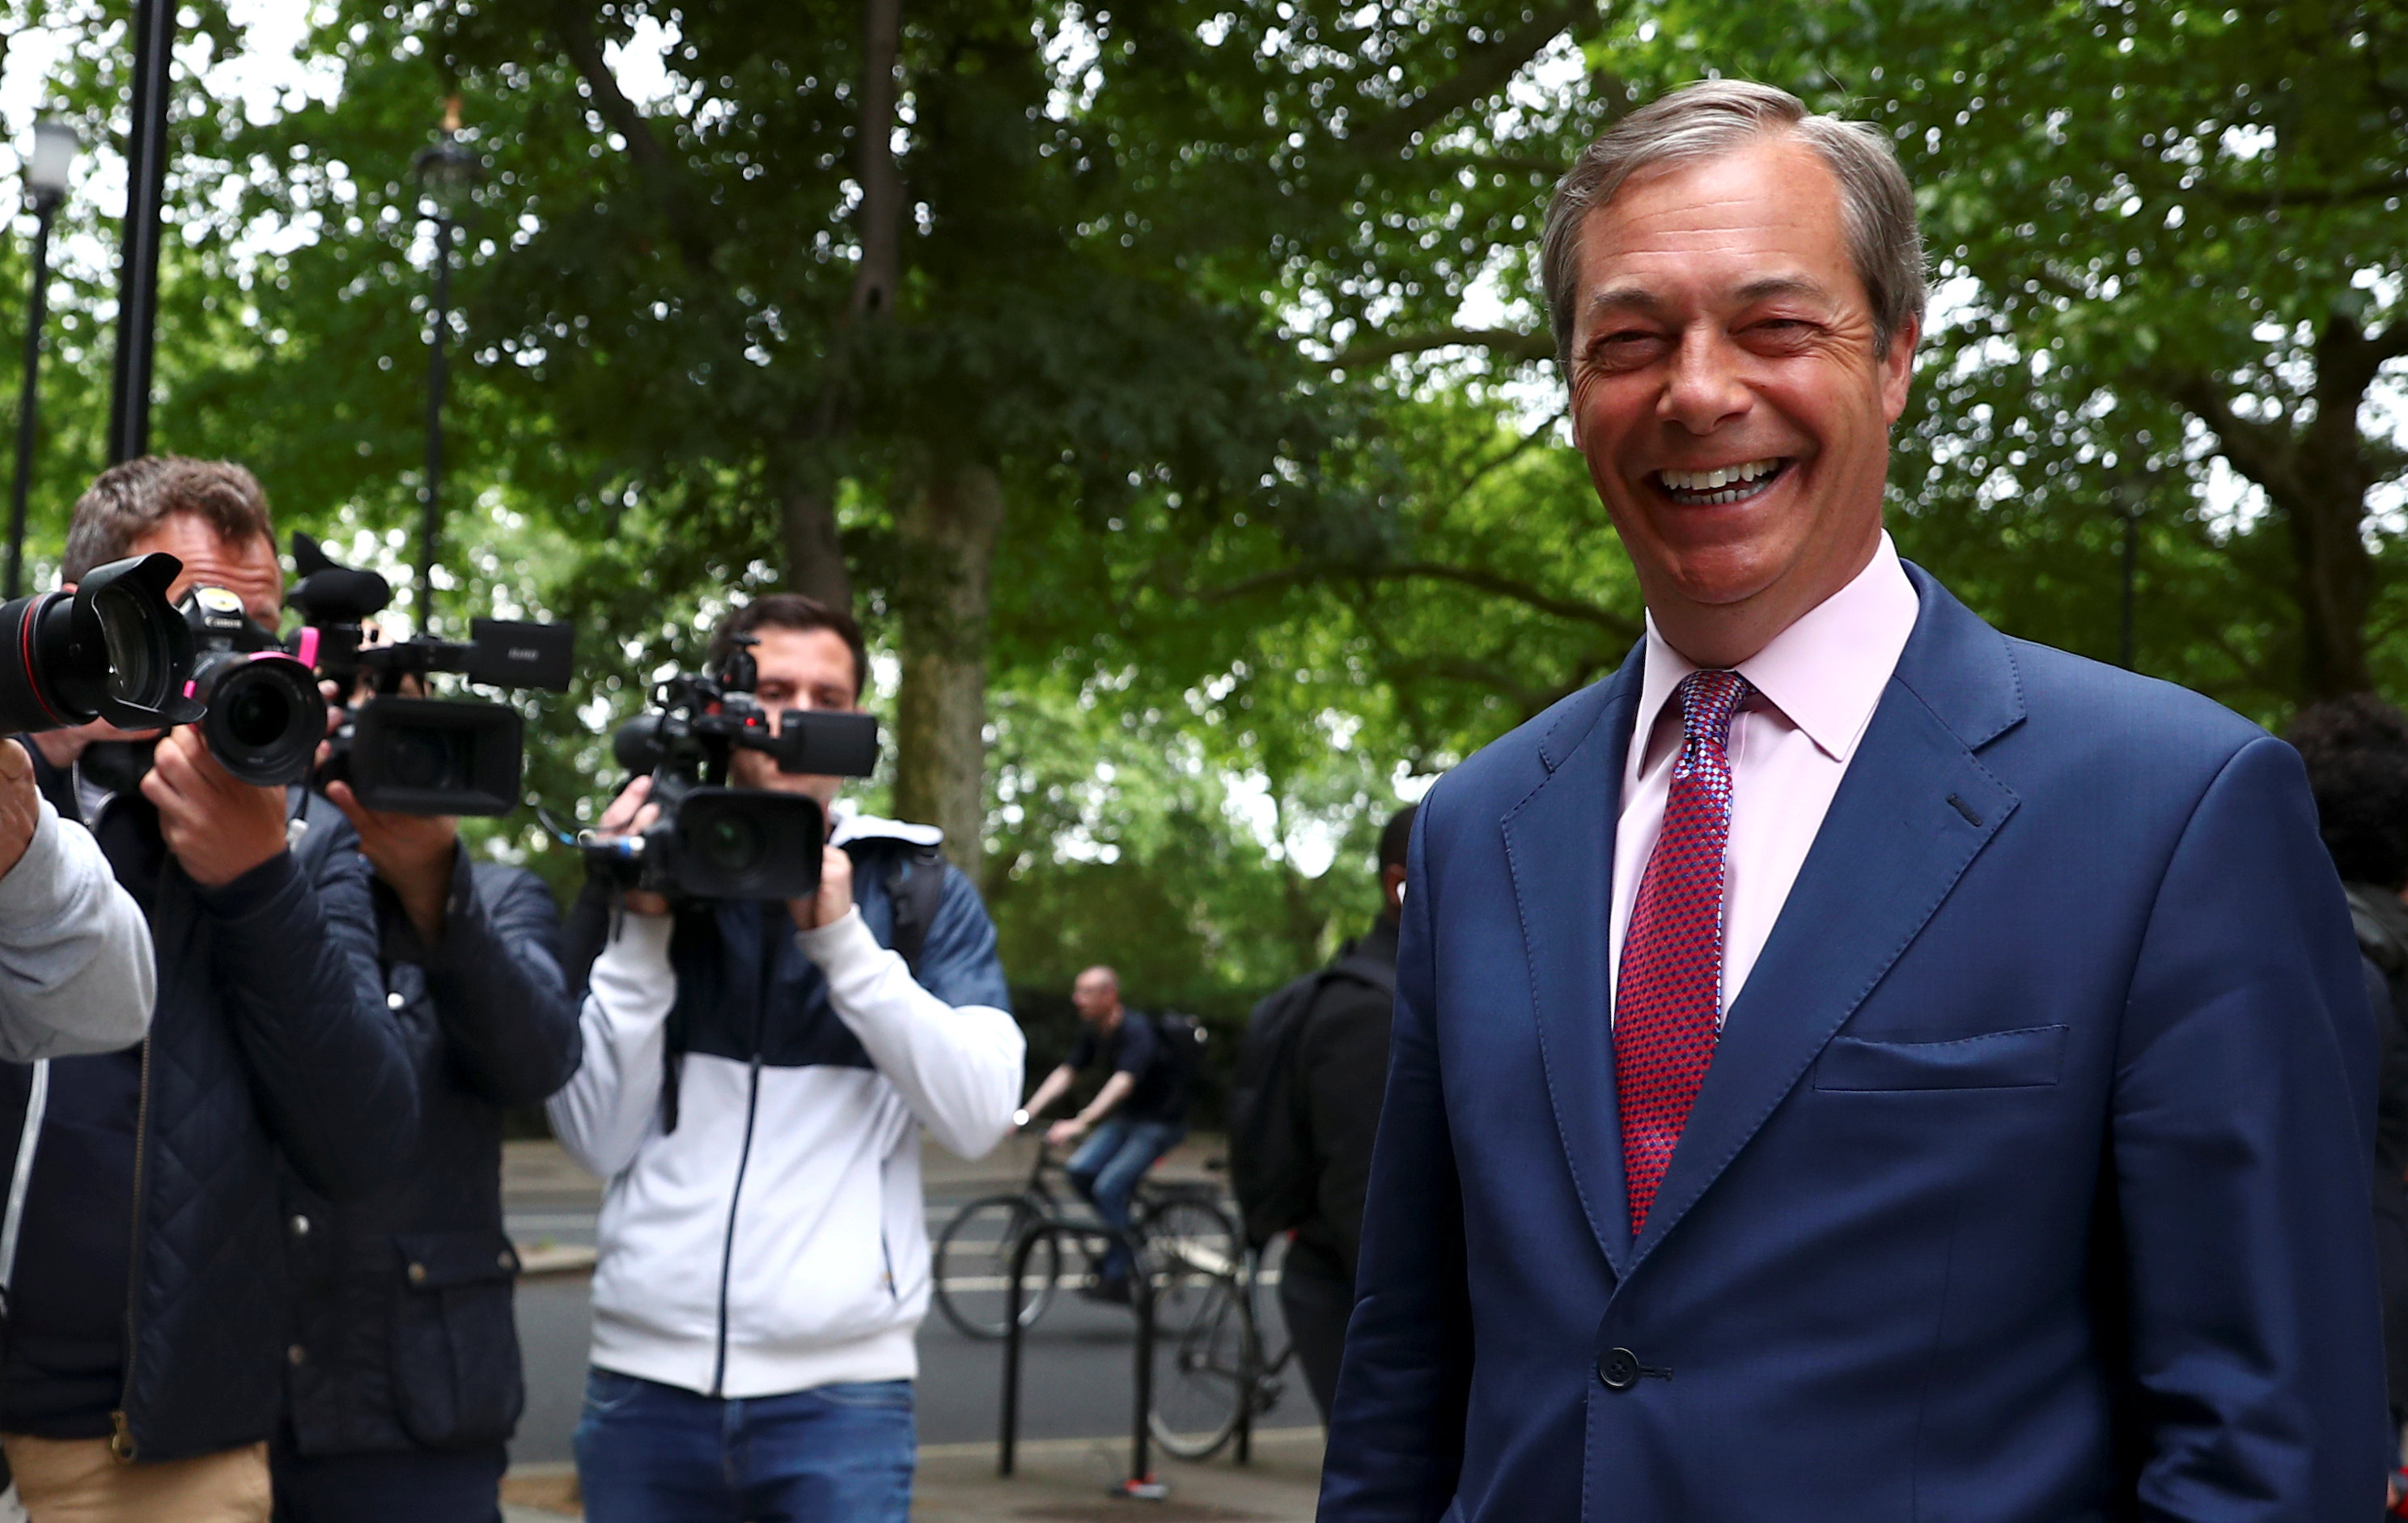 Leader of the Brexit Party Nigel Farage is pictured outside TV studios in Westminster, following the results of the European Parliament elections, in London, Britain May 27, 2019. REUTERS/Hannah Mckay